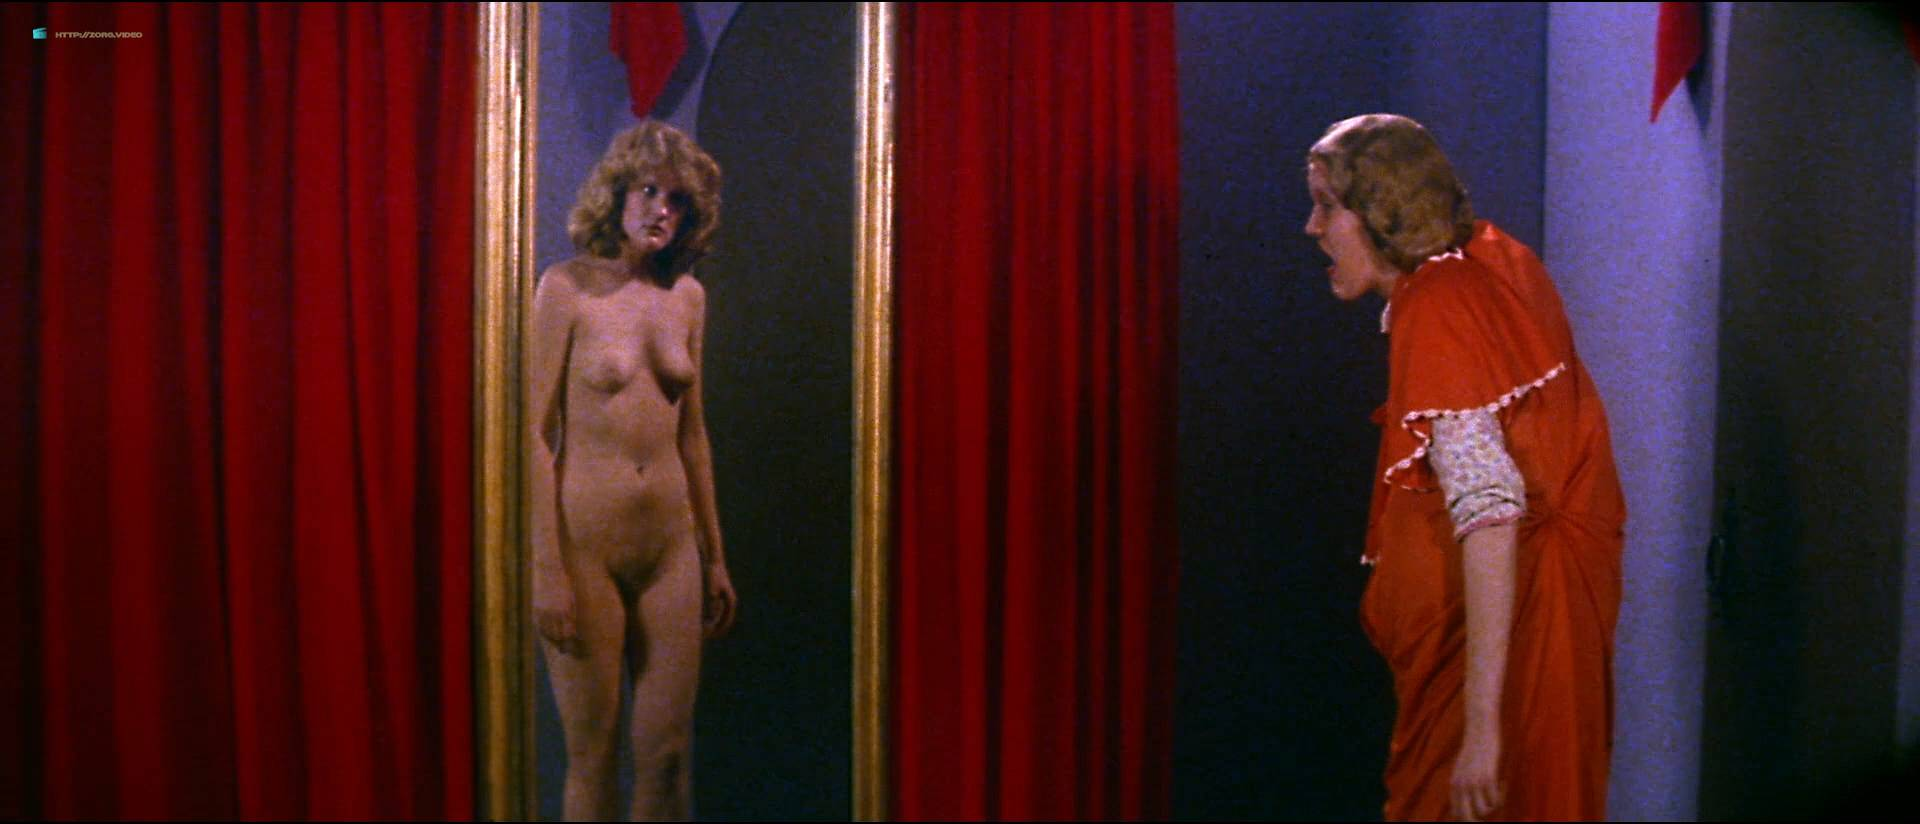 Linnea Quigley nude bush Angela Aames nude full frontal others nude - Fairy Tales (1978) HD 1080p (7)